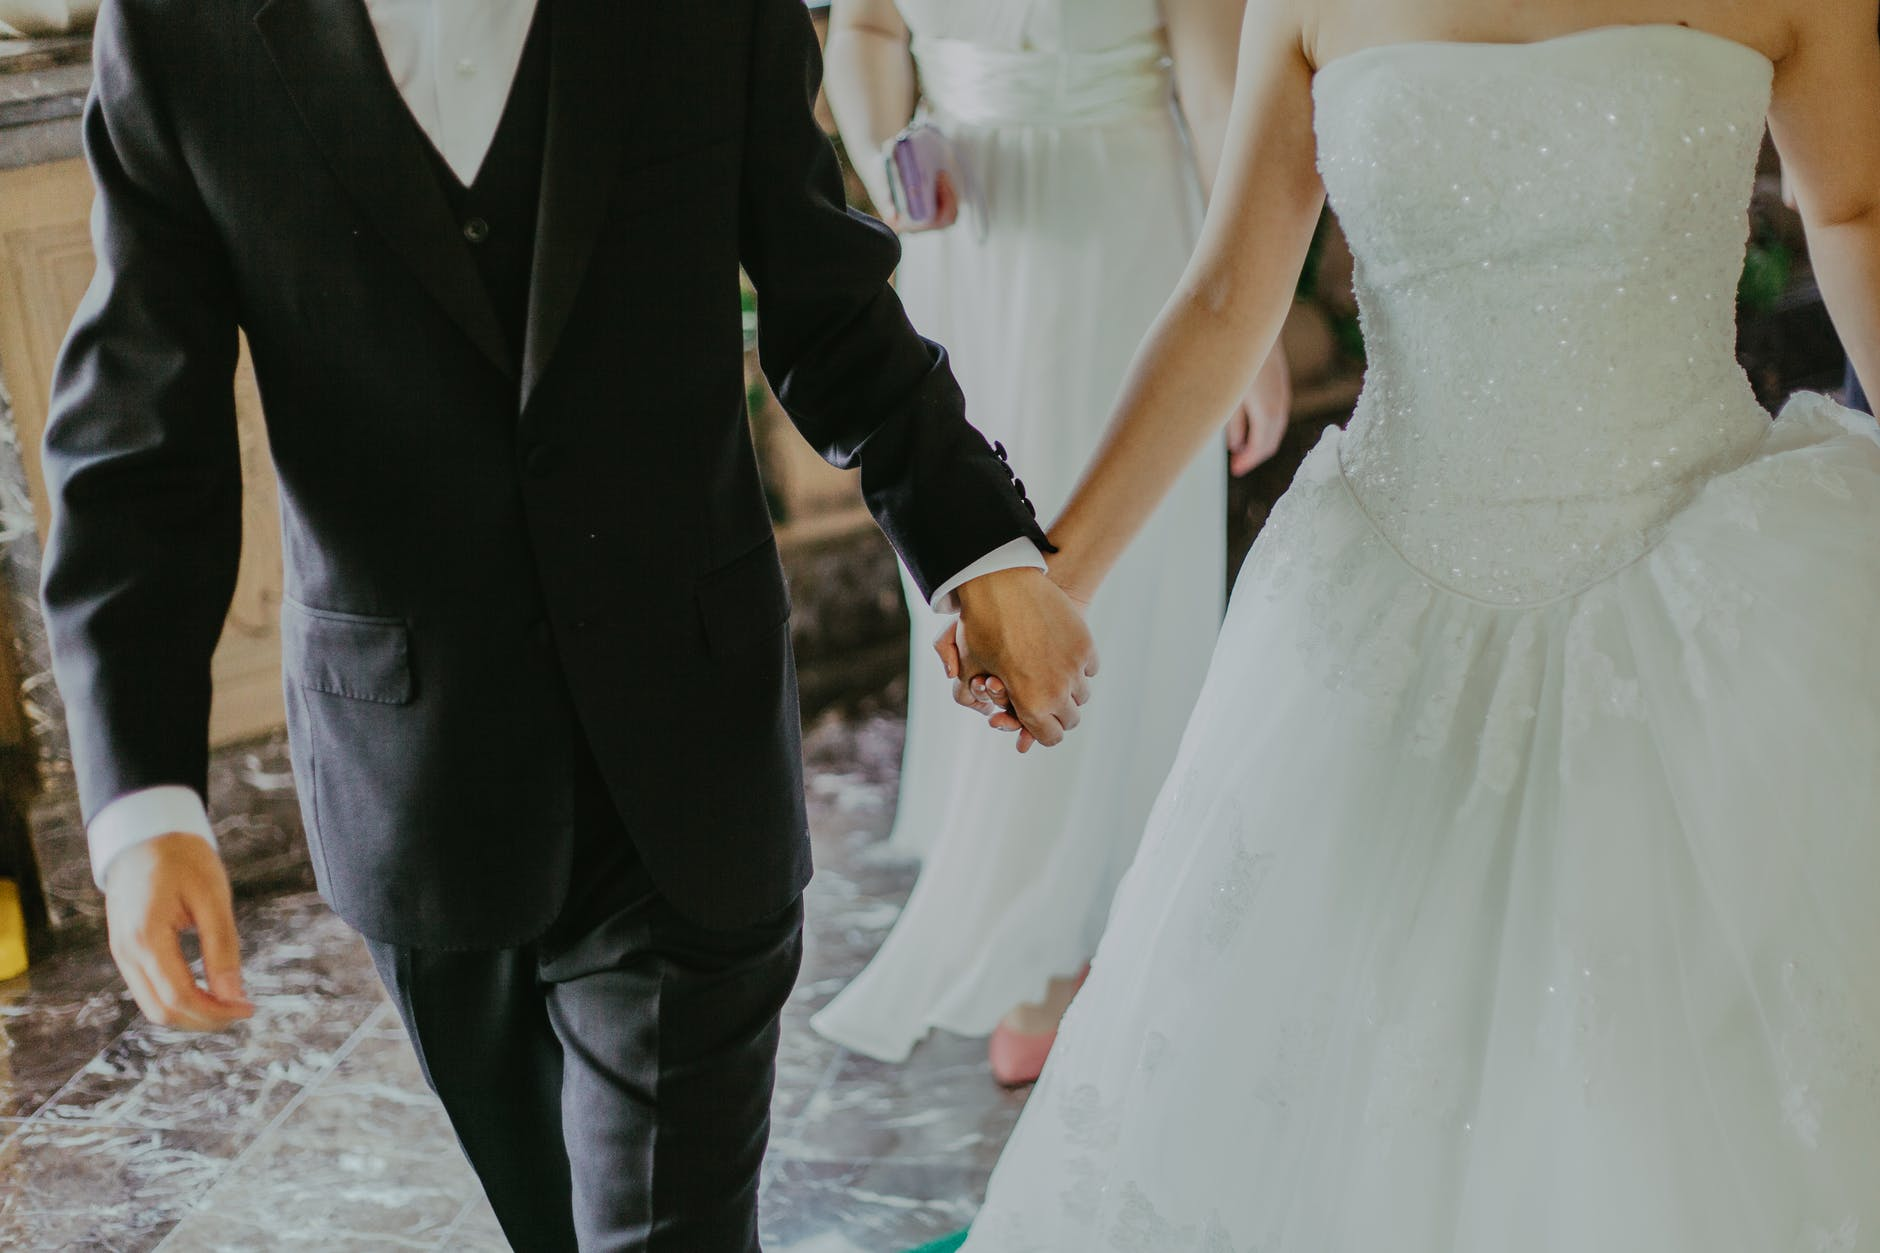 Newly wedded couple walking down the aisle.  | Photo: Pexels